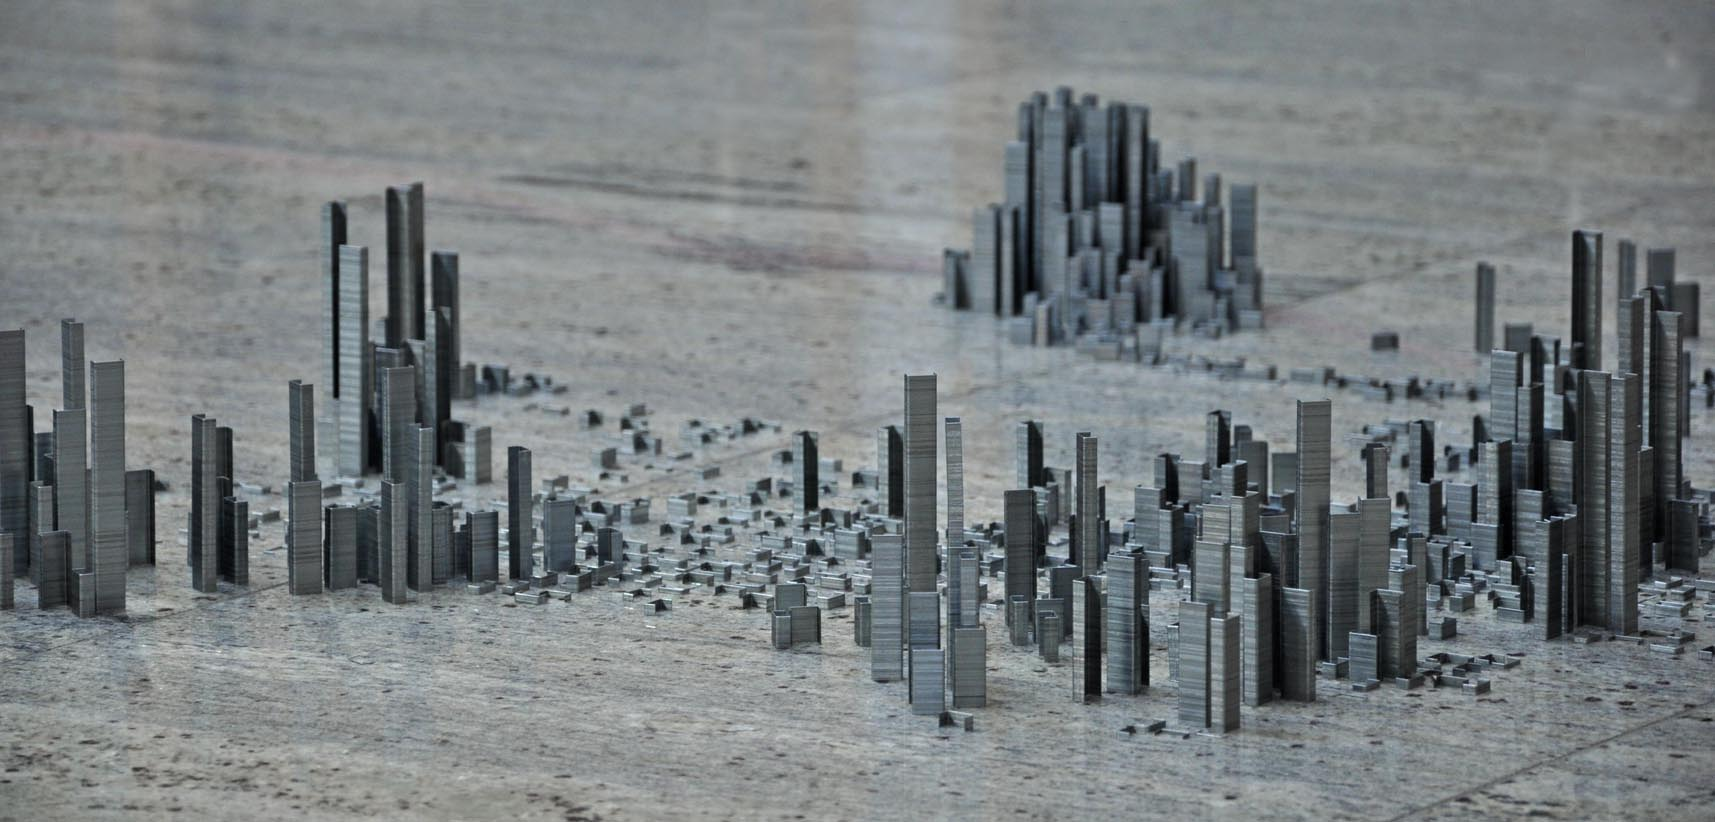 Artists creates cityscape out of 100,000 staples